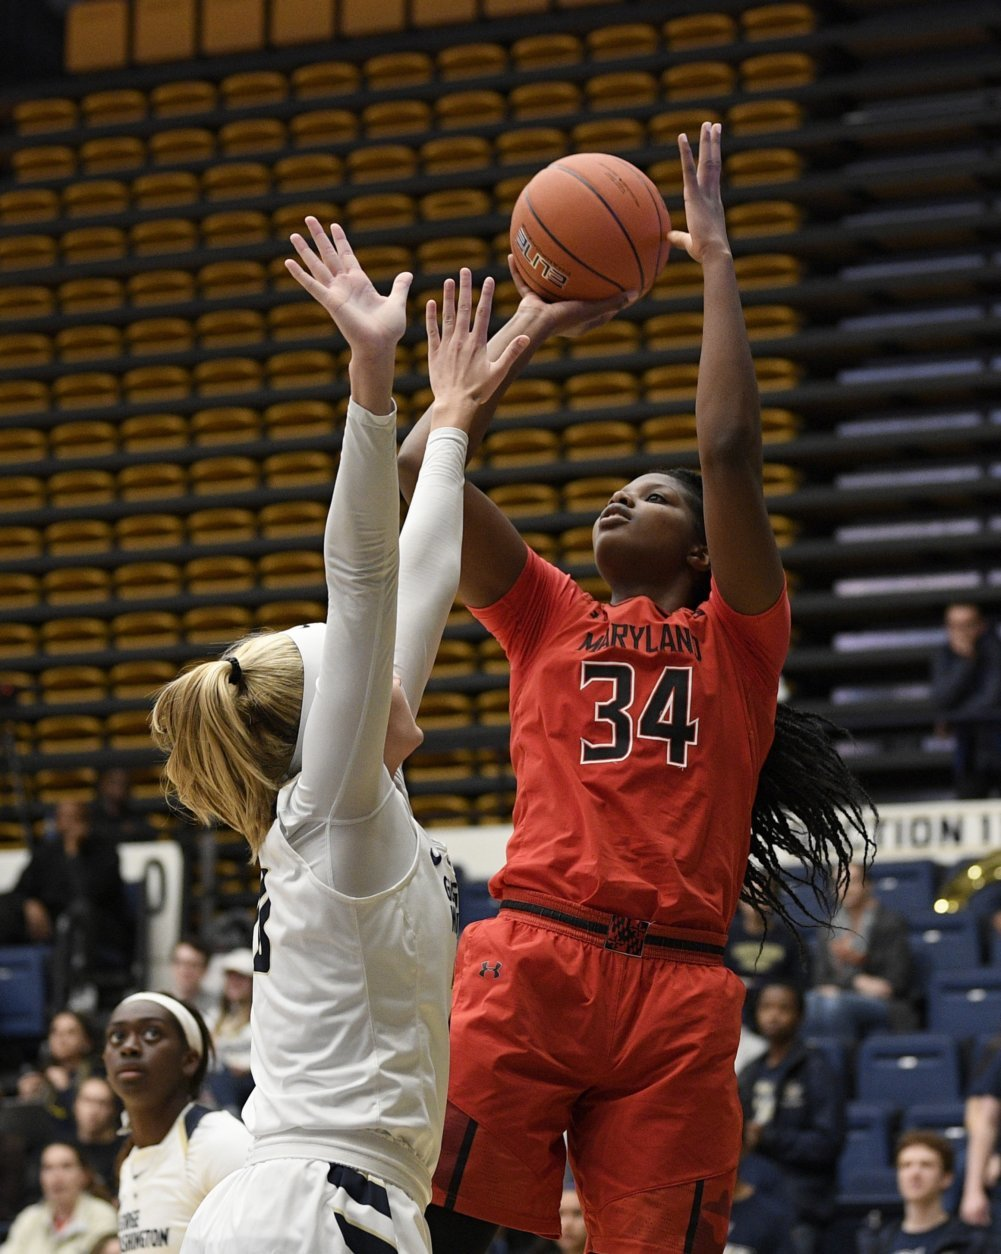 Maryland forward Brianna Fraser (34) shoots against George Washington forward Sarah Overcash, left, during the second half of an NCAA college basketball game, Wednesday, Nov. 14, 2018, in Washington. Maryland won 69-30. (AP Photo/Nick Wass)